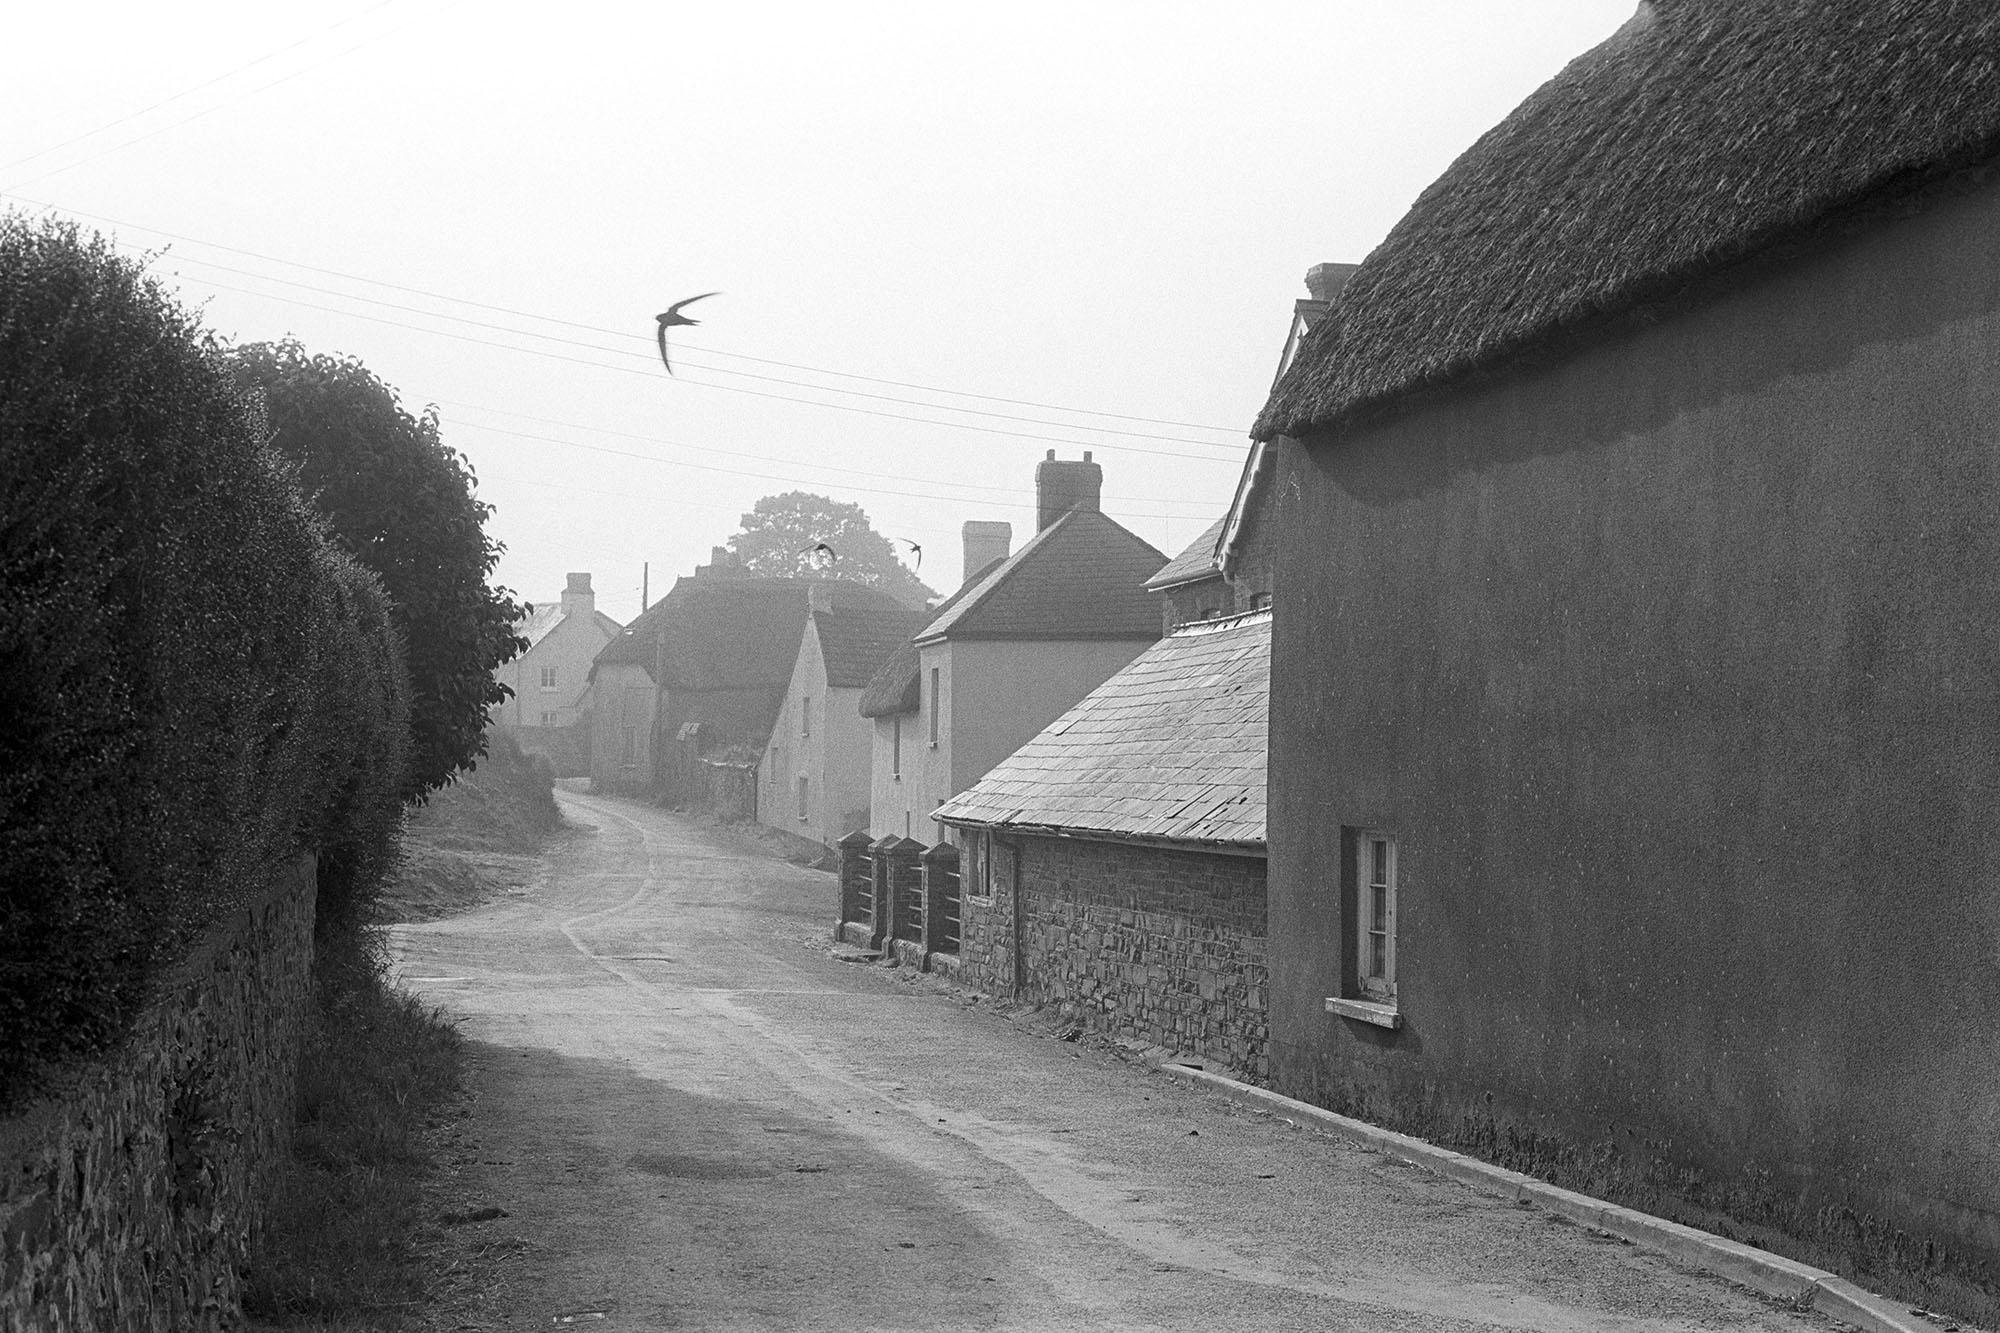 Village street with swifts, Roborough, 1981